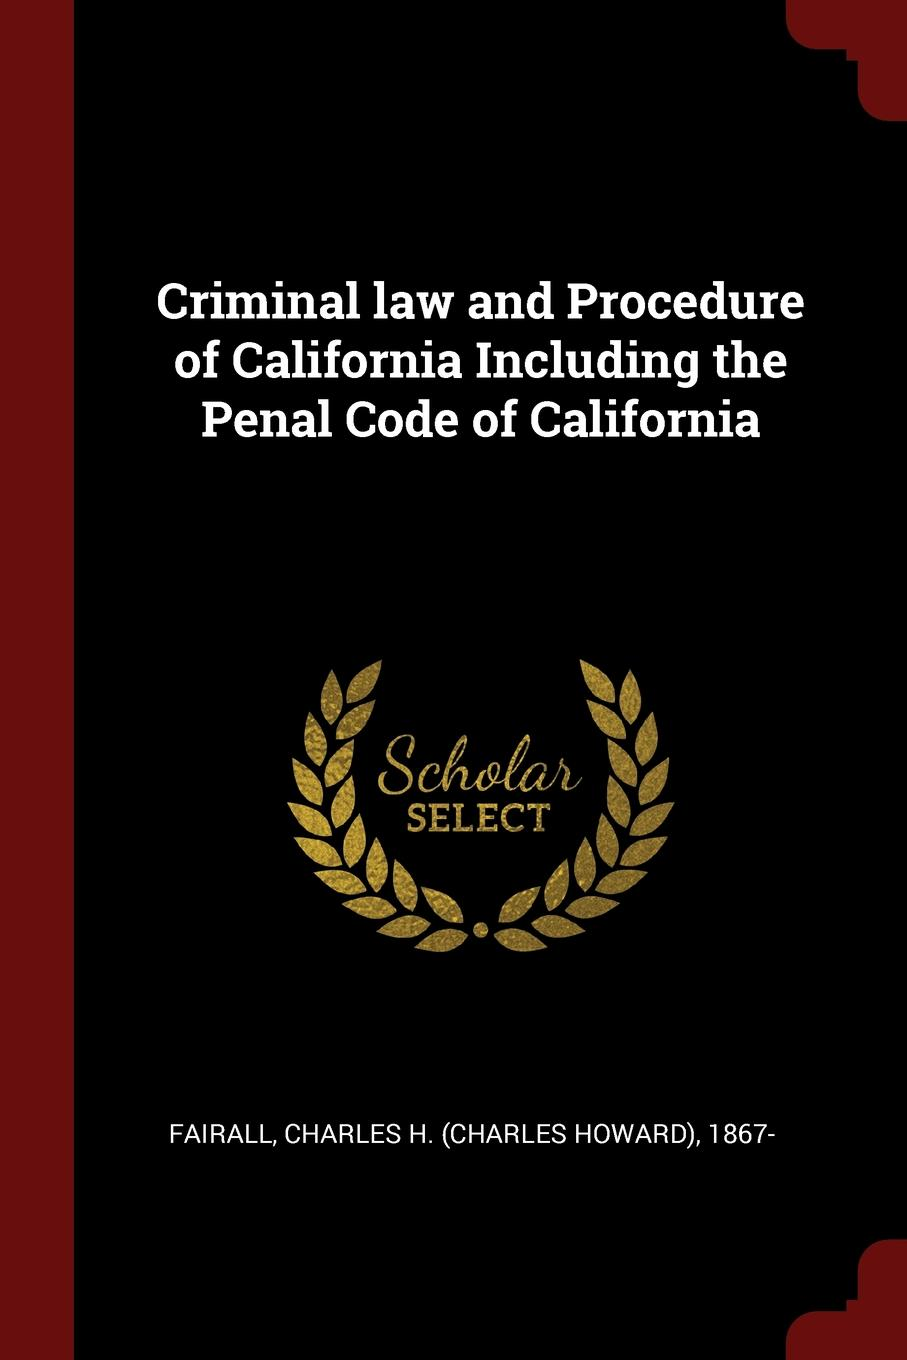 Criminal law and Procedure of California Including the Penal Code of California